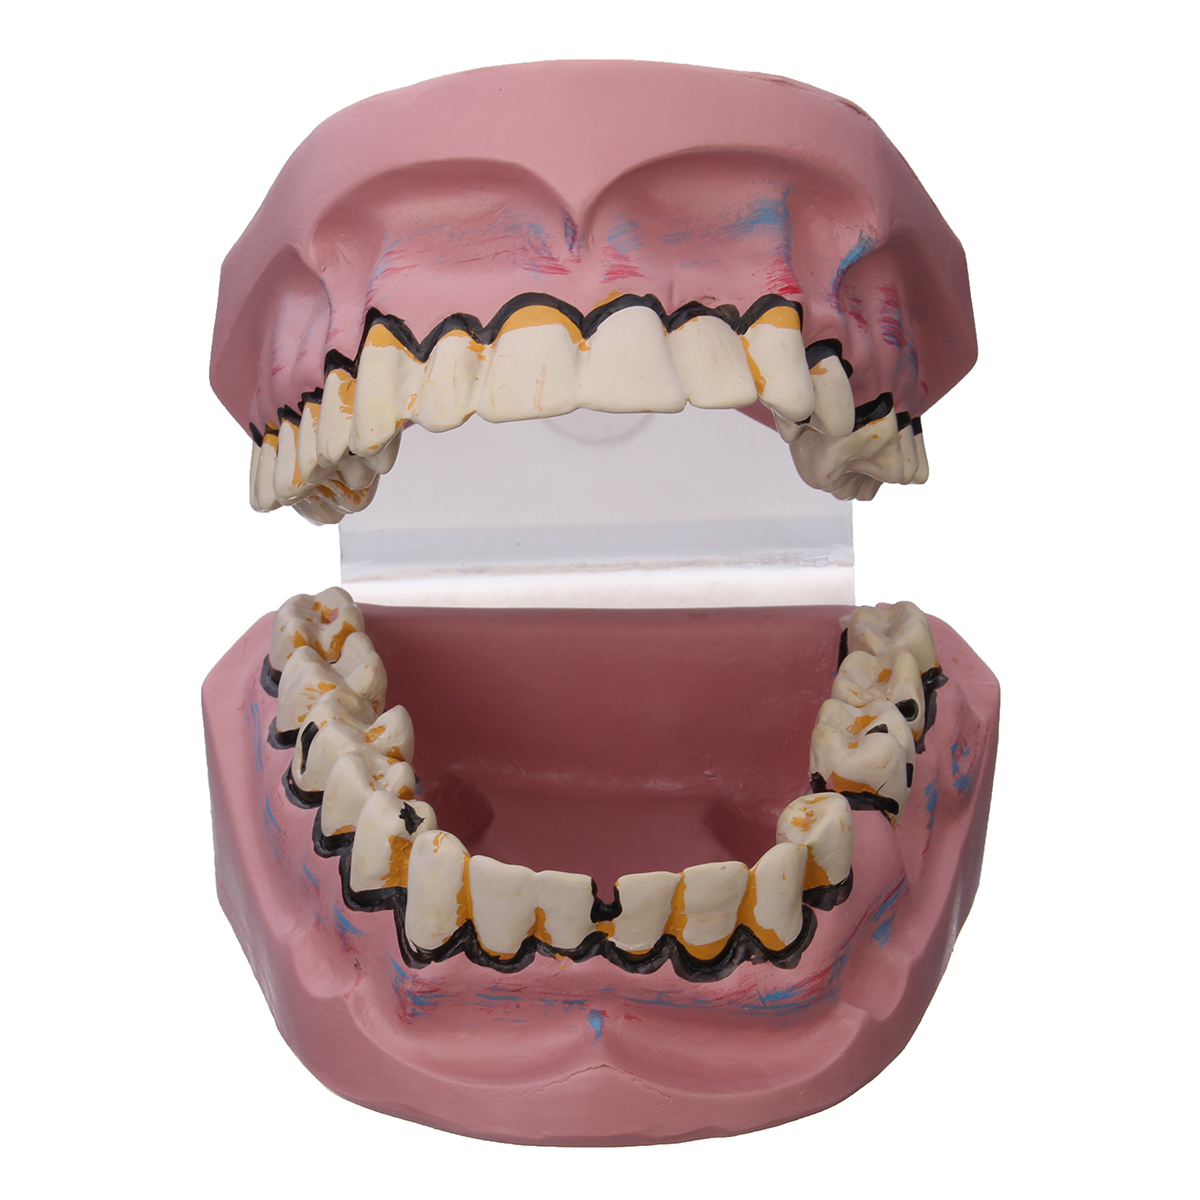 Dental Disease Teeth Model Oral Tooth Model Smoking Harm Disease Teeth Implantation Medical Model